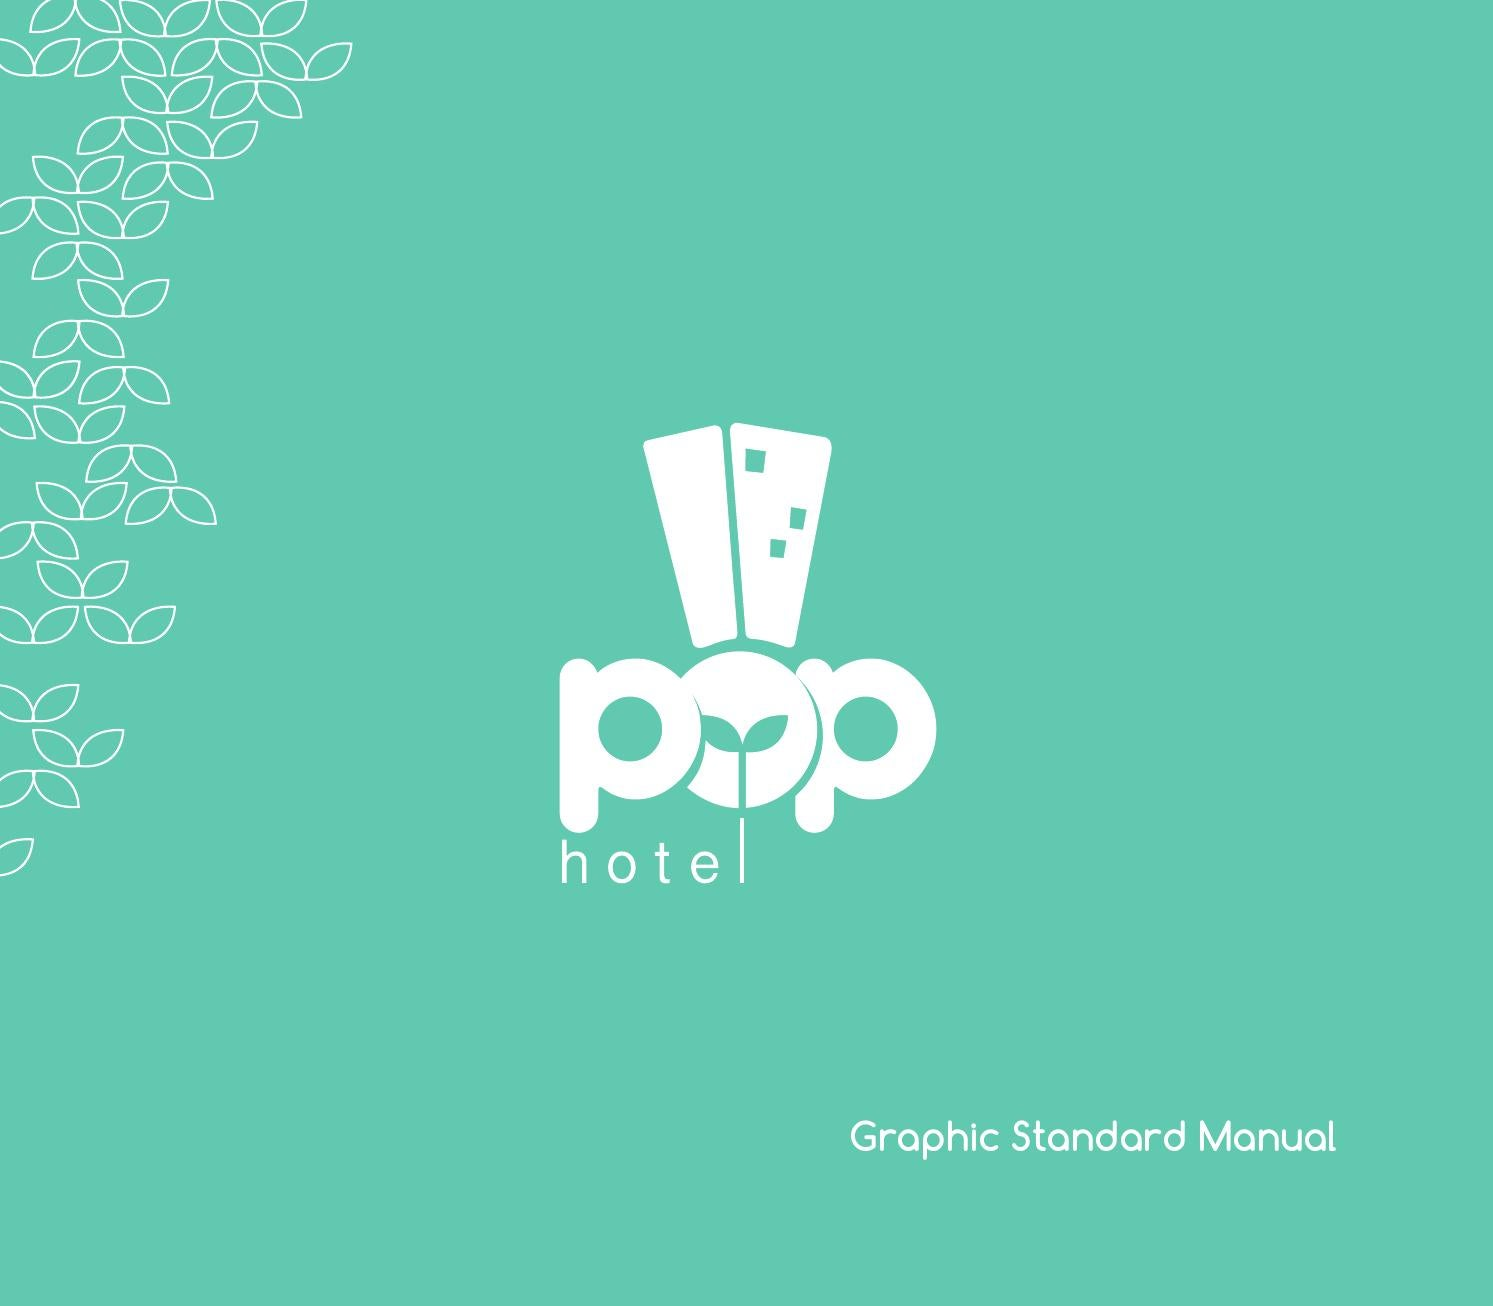 Pop Hotel Graphic Standard Manual By Shabrina Astrilia